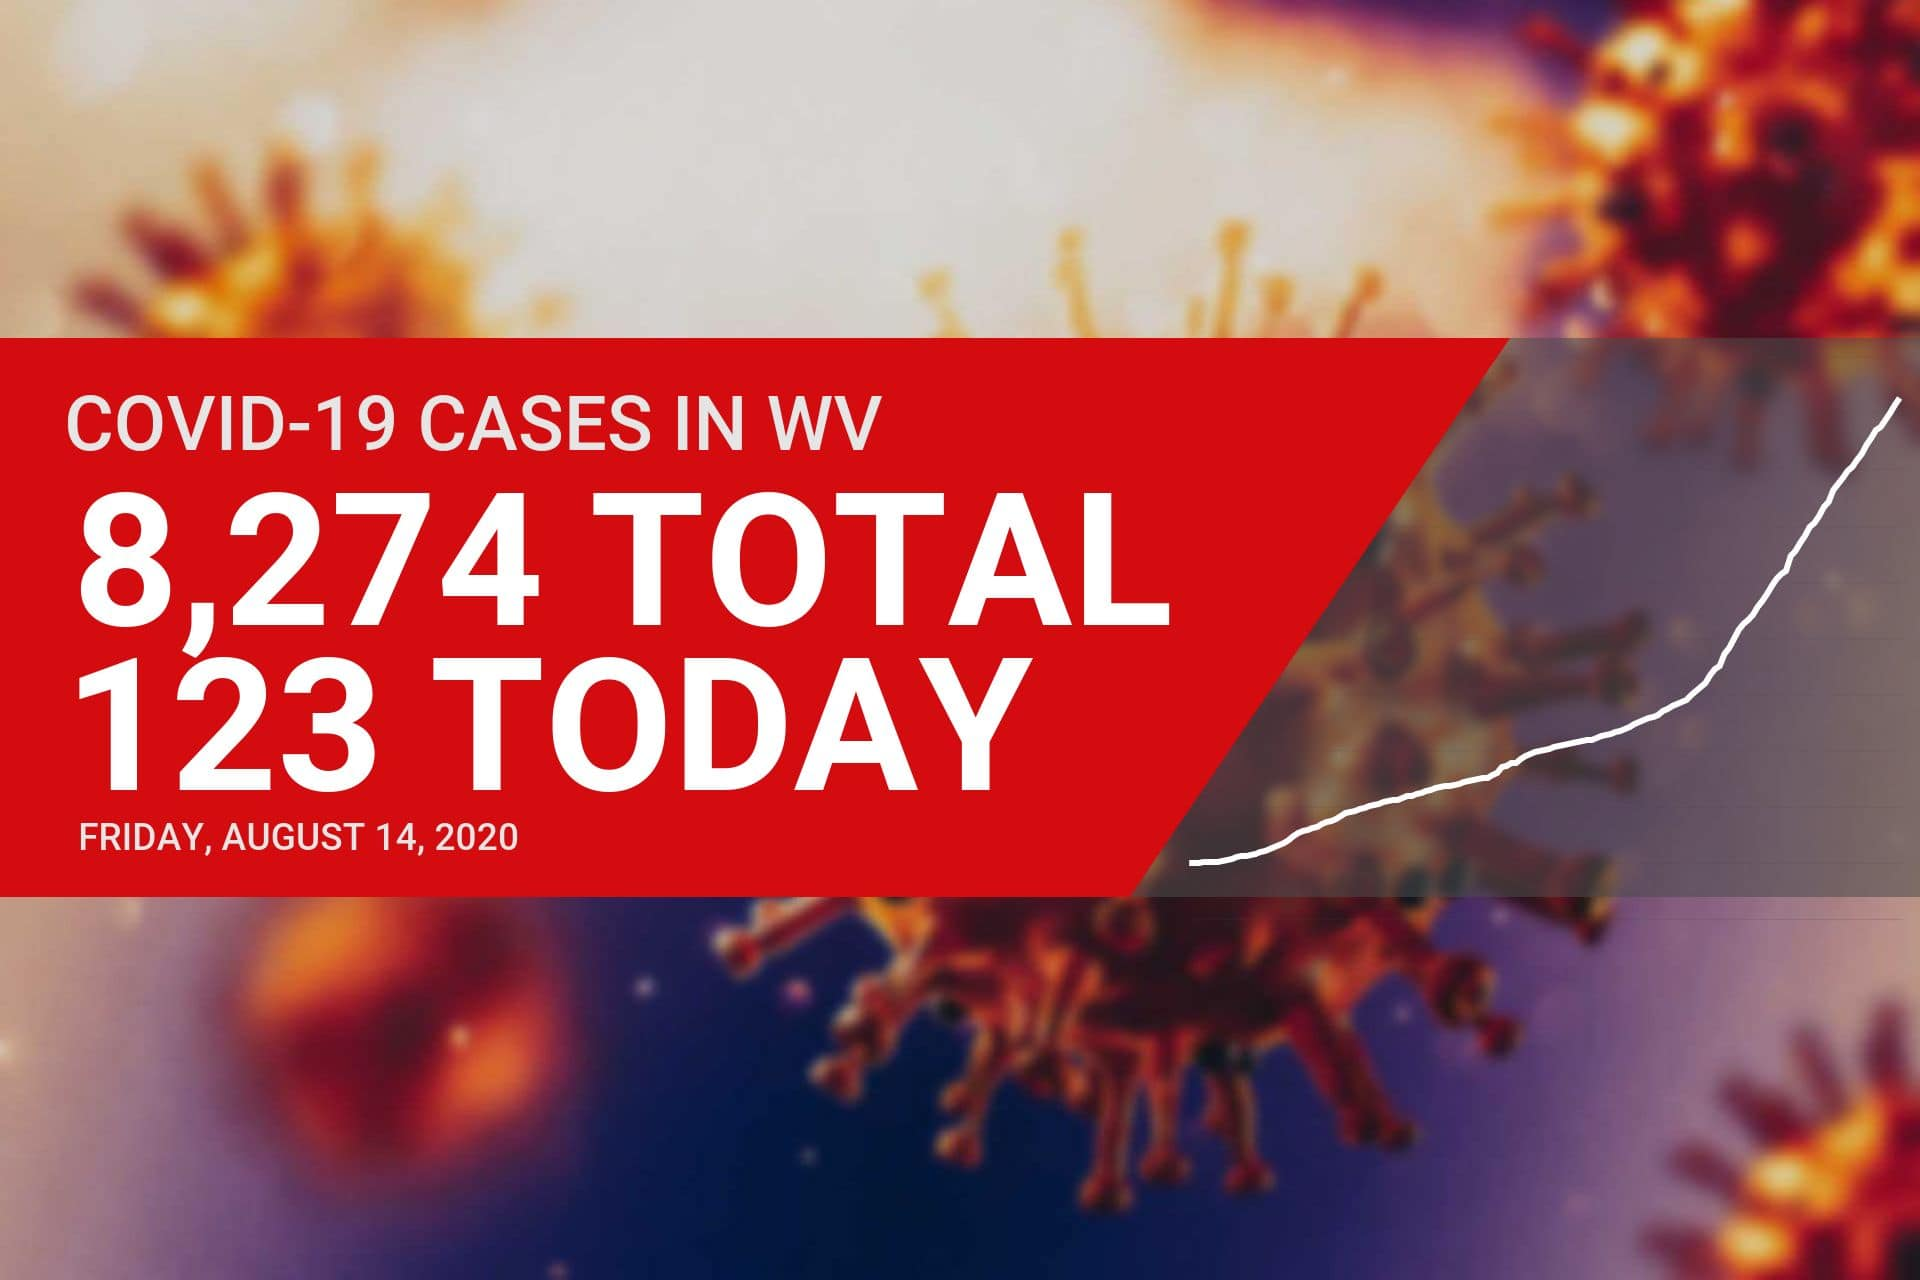 Four deaths, 123 new cases of COVID-19 reported in West Virginia on Friday